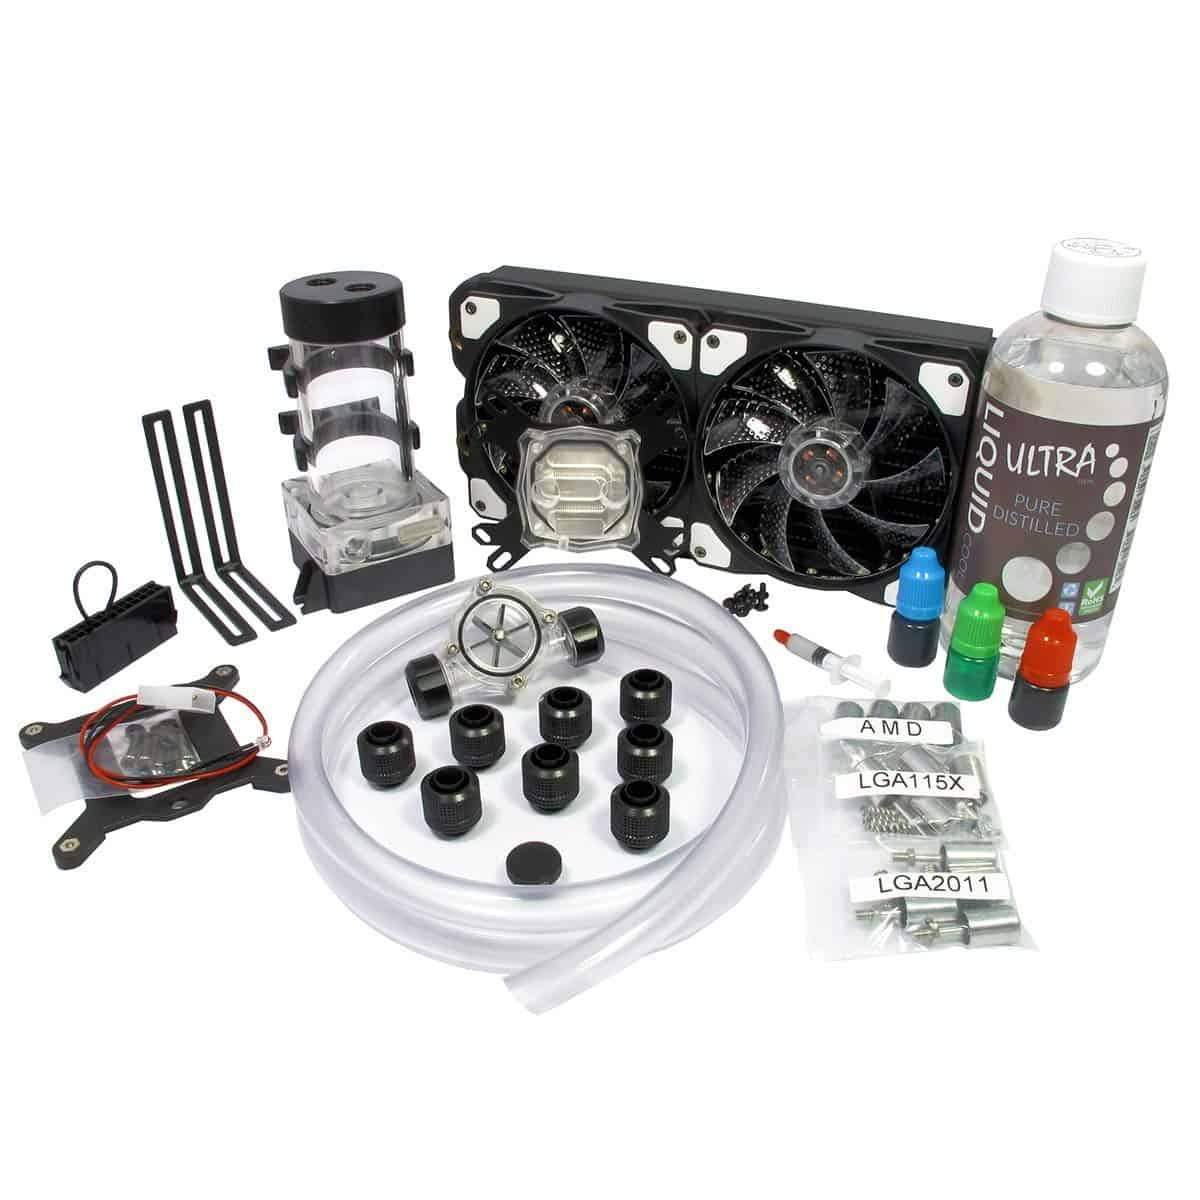 Game Max Vortex One Advanced DIY 240mm Water Cooling Kit